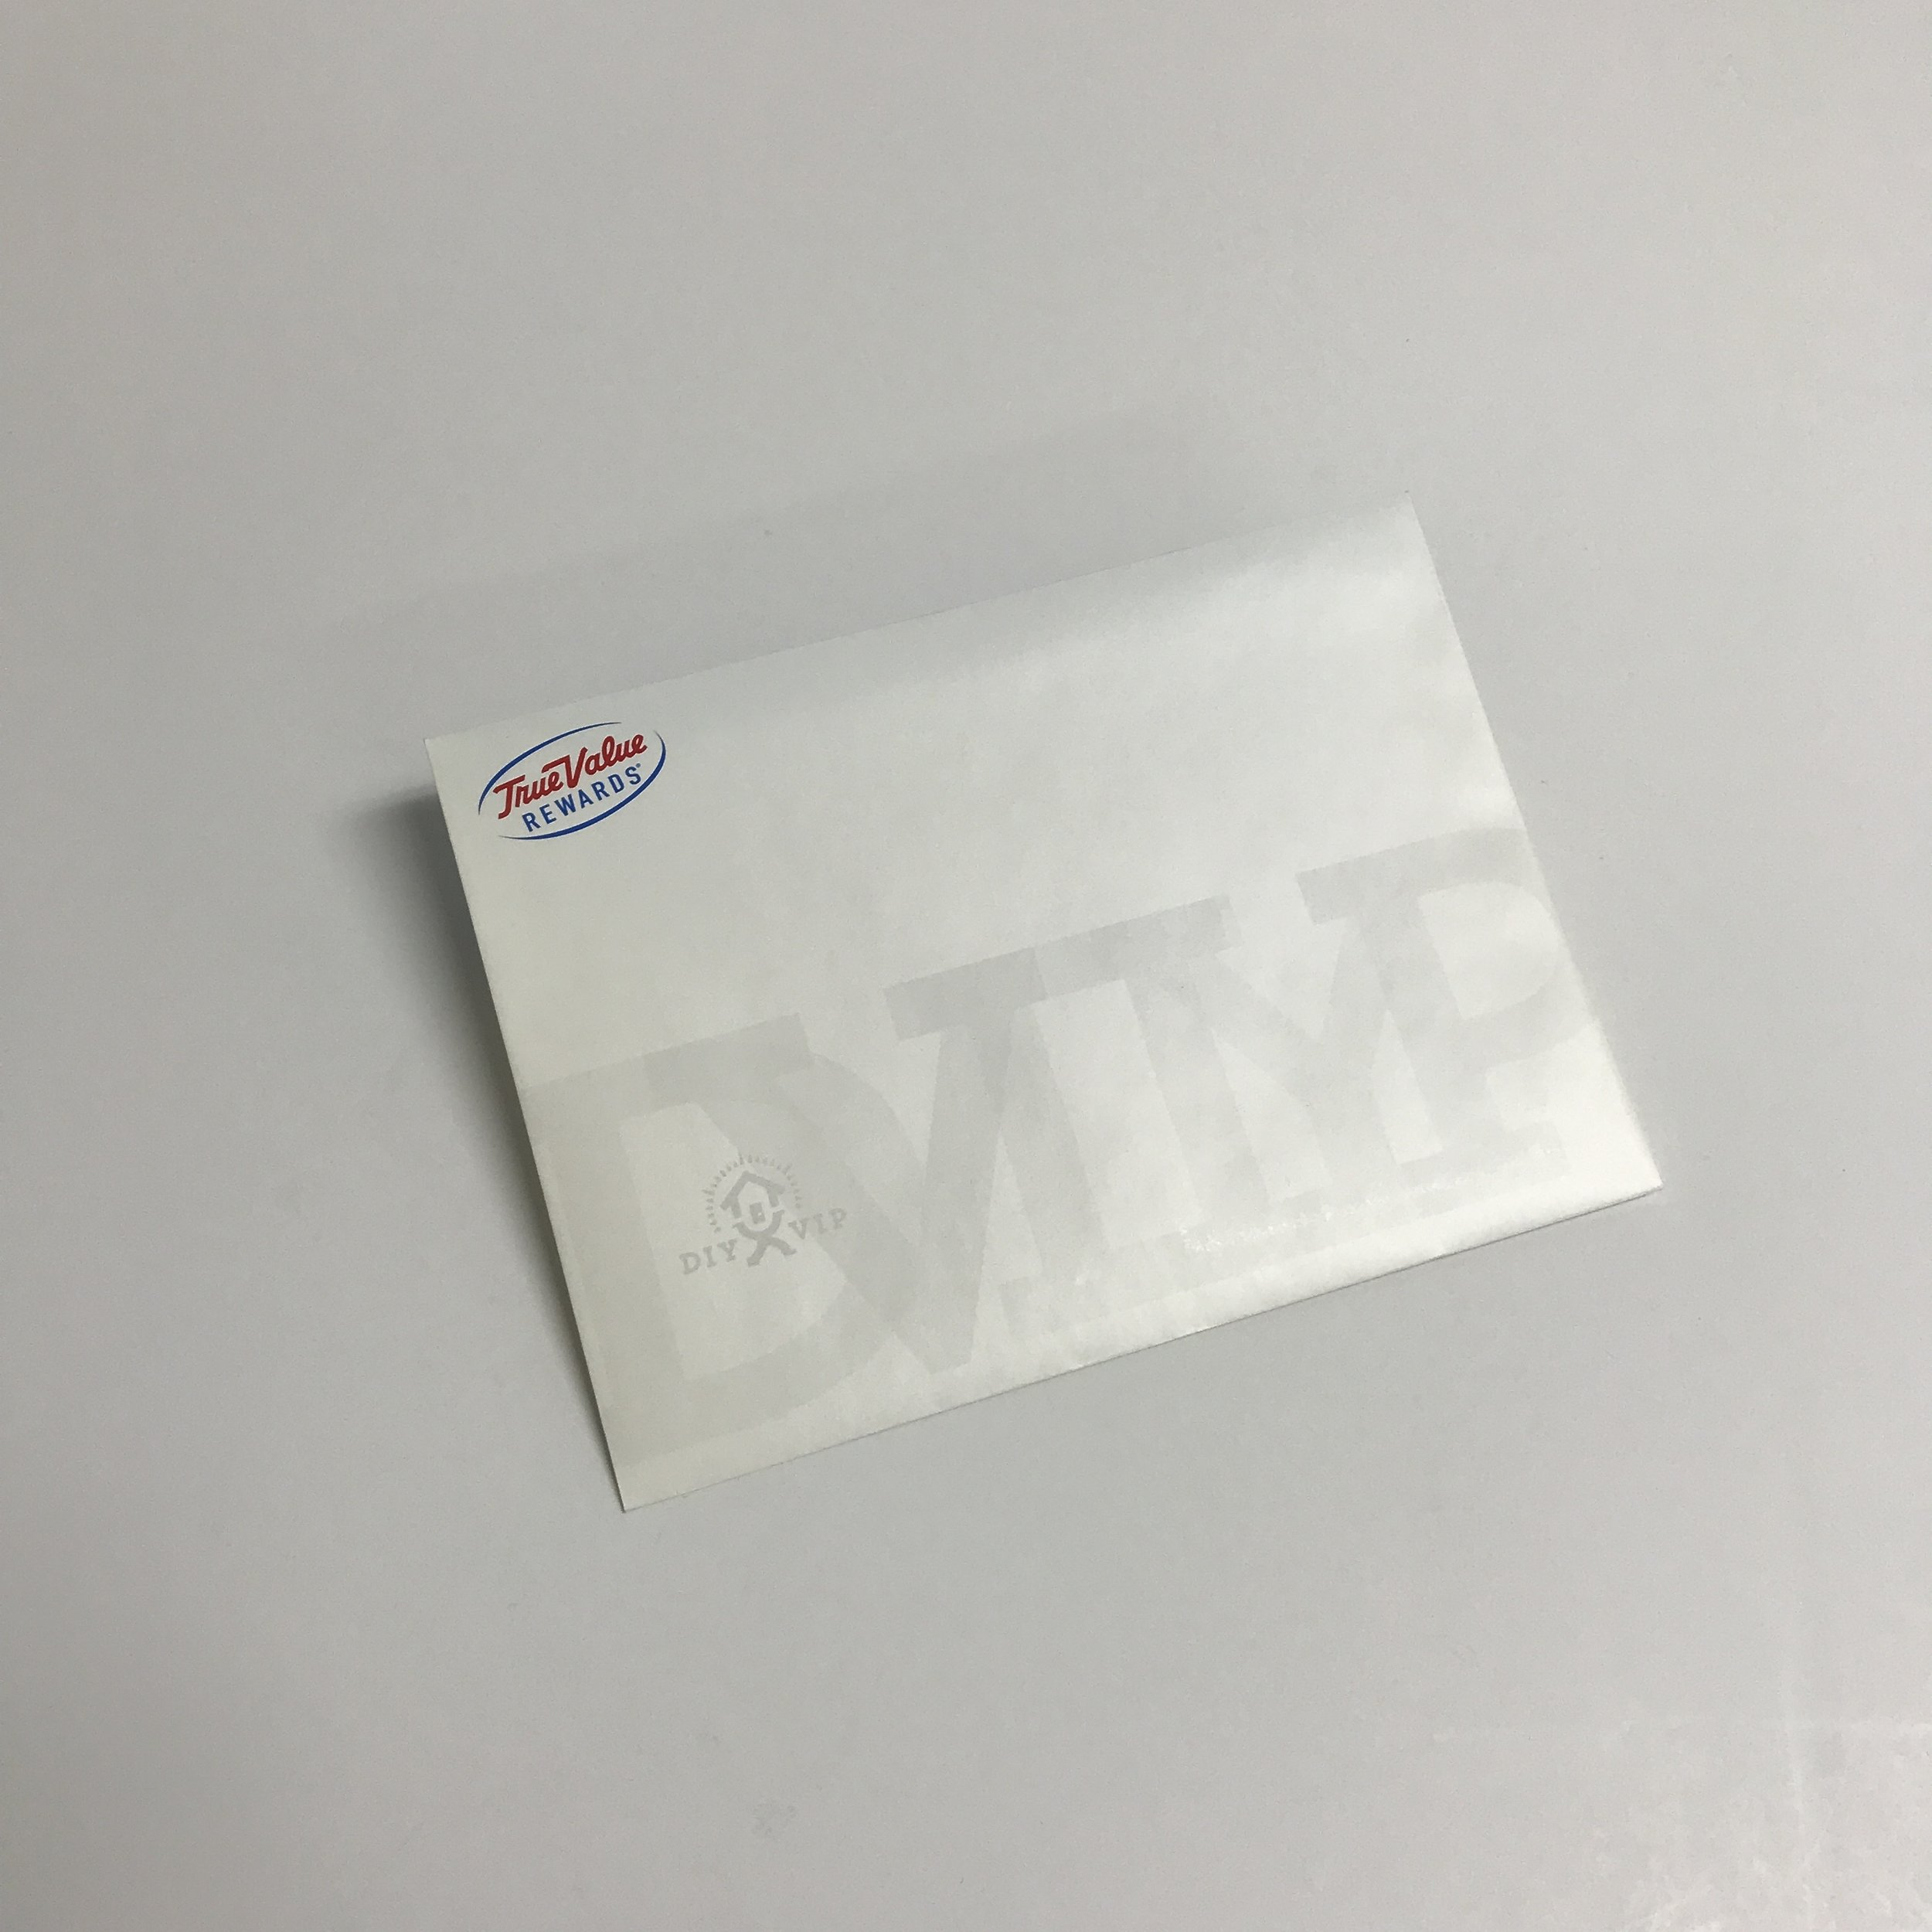 Custom corporate envelope printed in Minneapolis